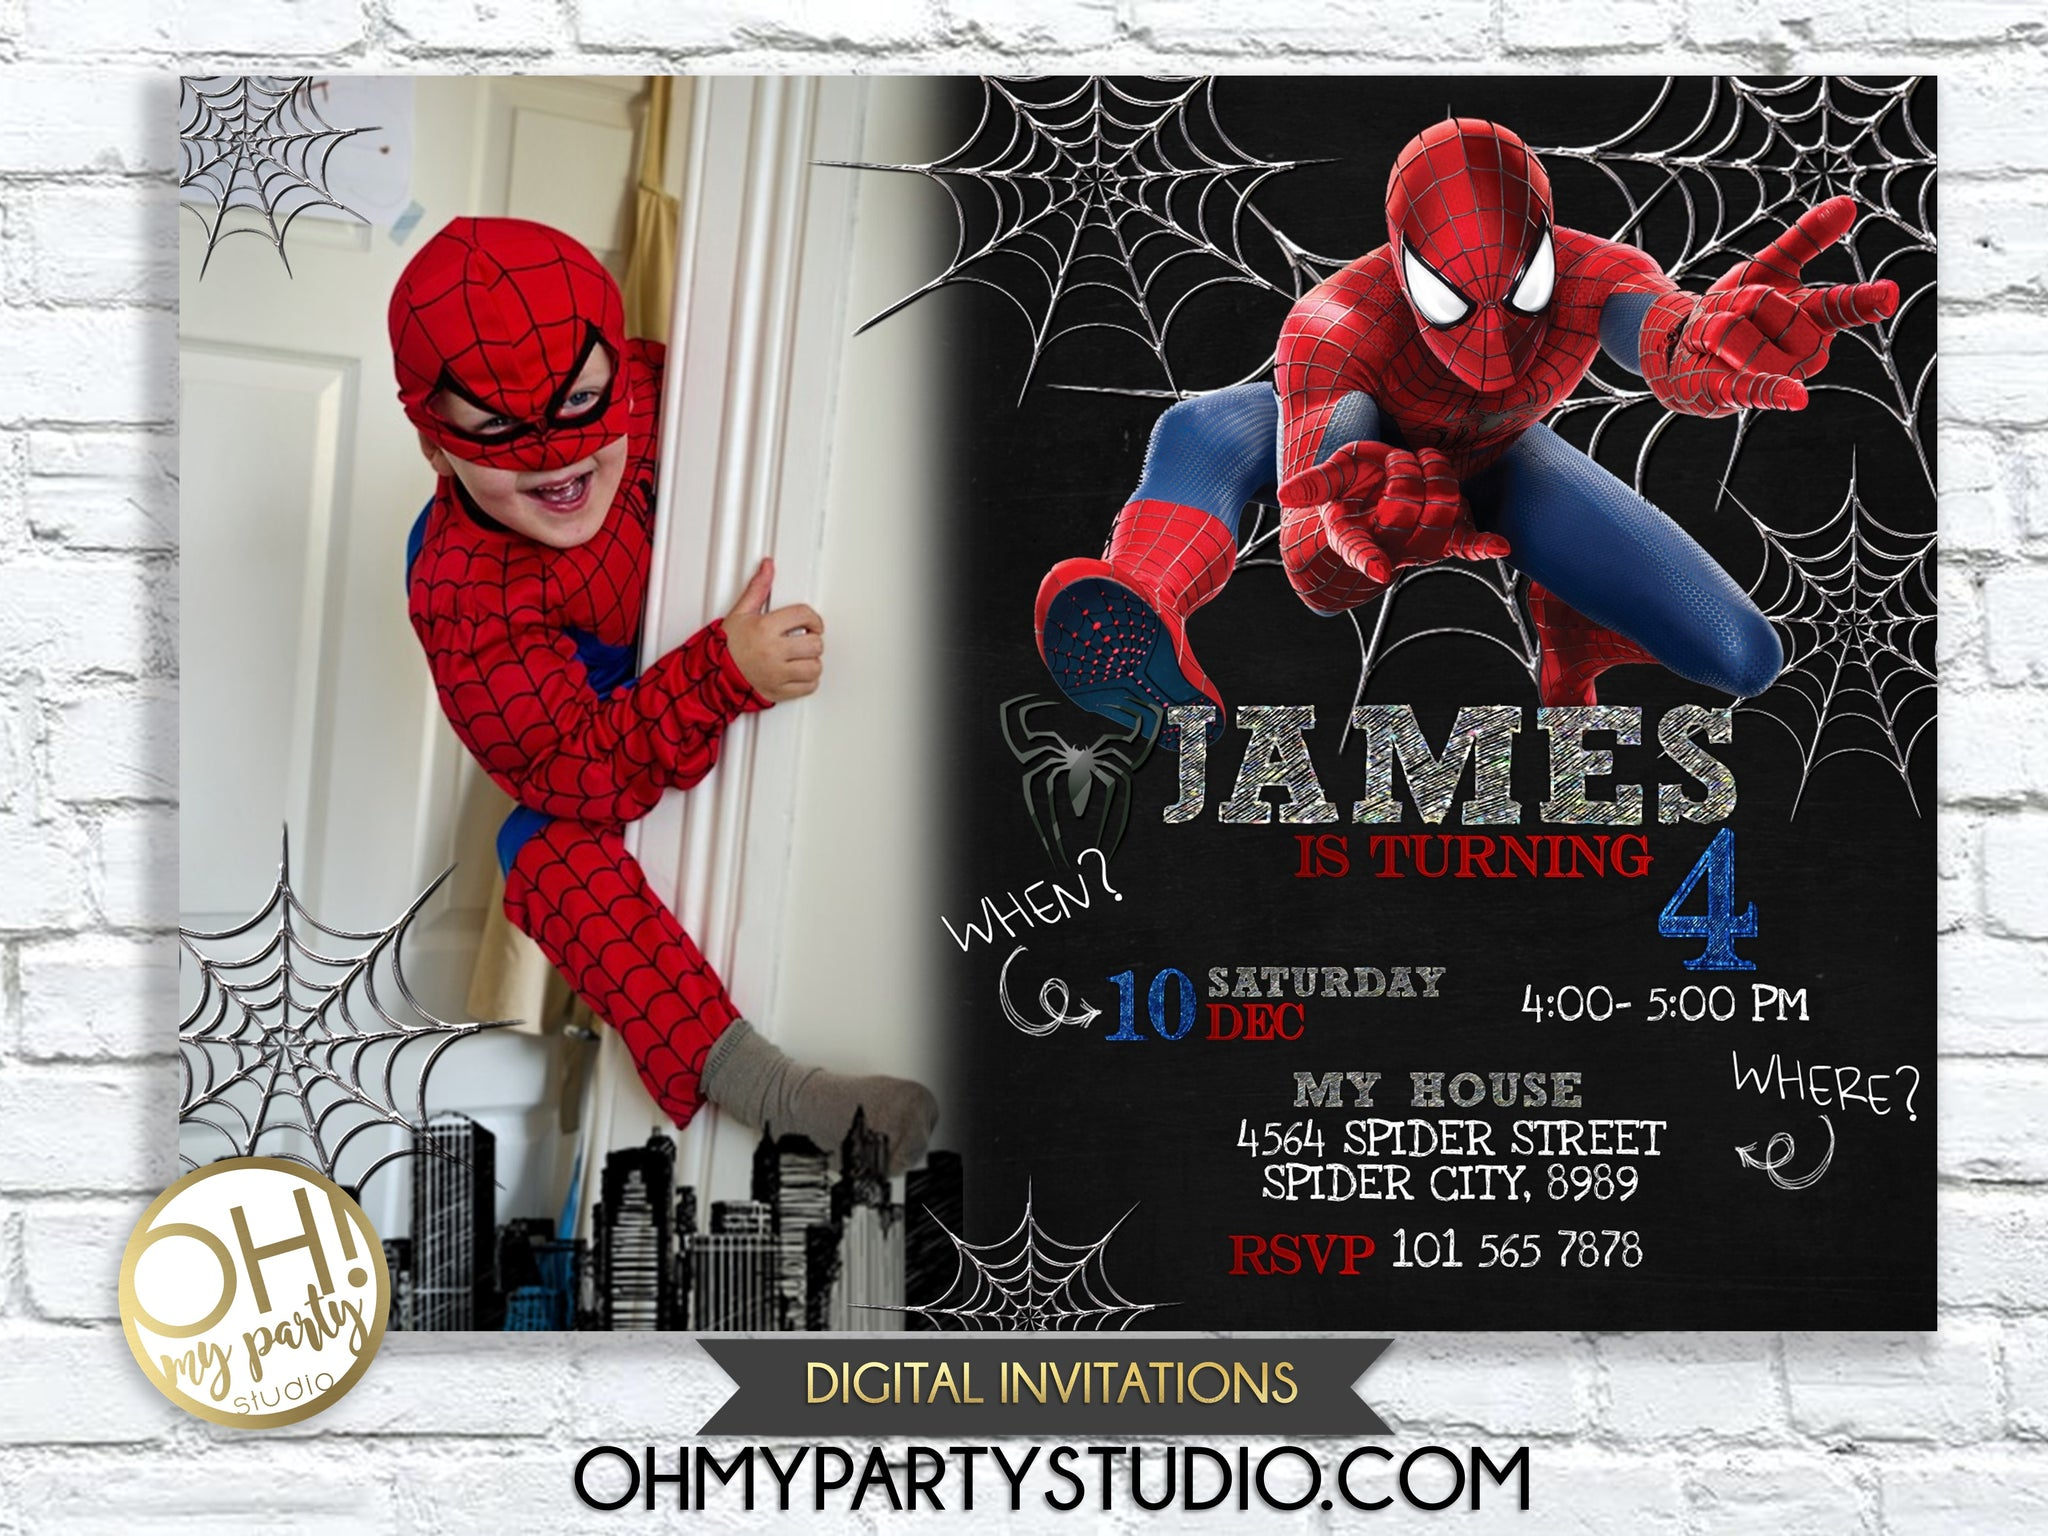 photograph regarding Printable Spiderman Invitations named SPIDERMAN BIRTHDAY Celebration INVITATION WITH Image